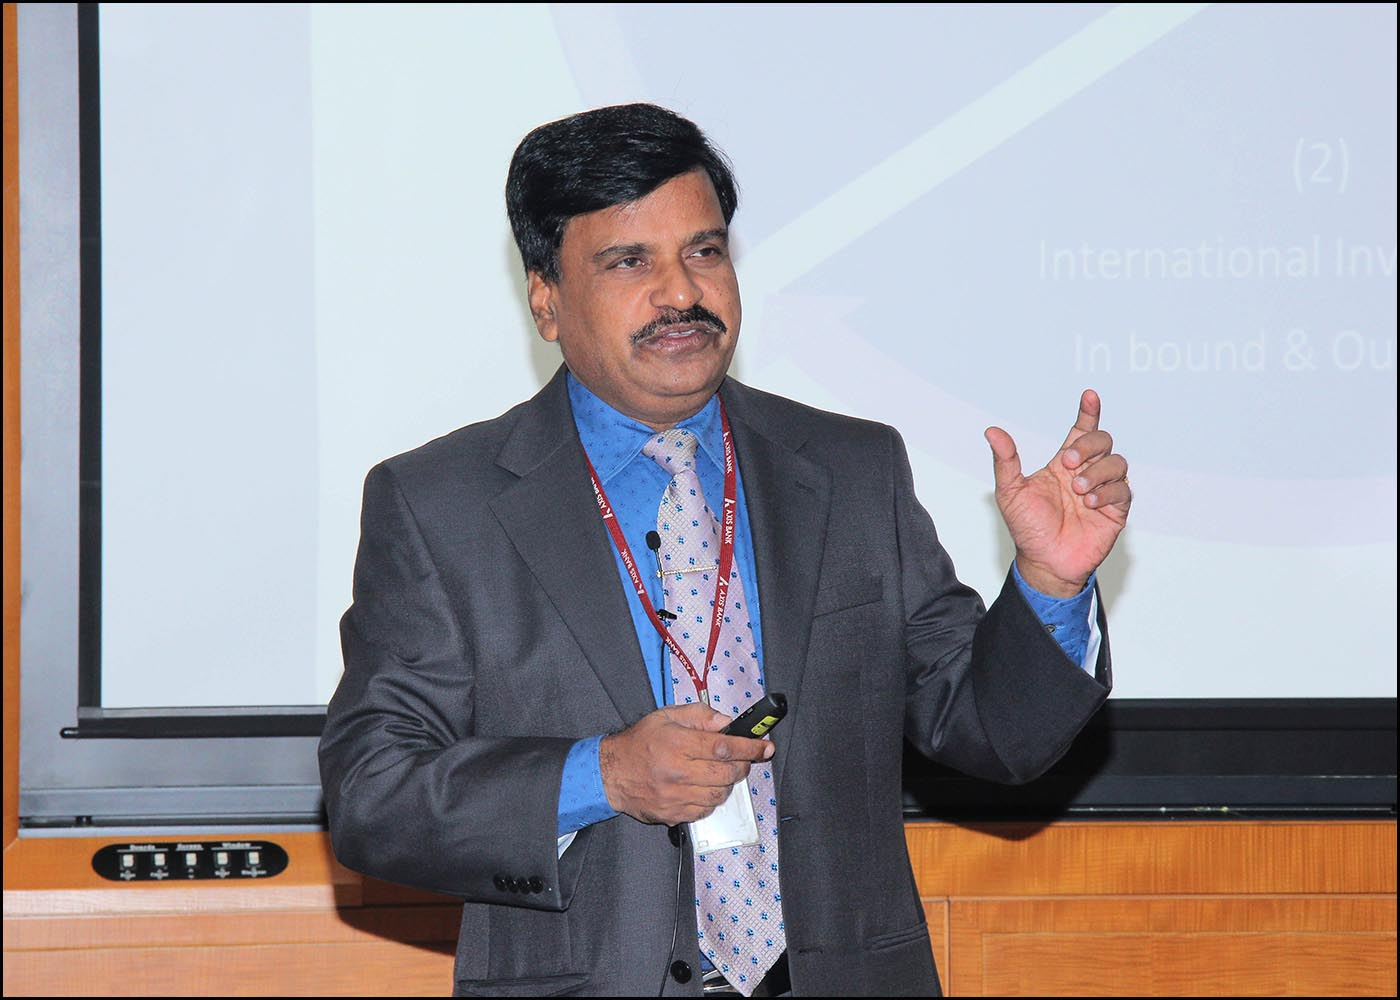 Shri. V Somasekhar, Head-Trade & Products, Business Compl.&Capability Development, Transaction Banking, Axis Bank